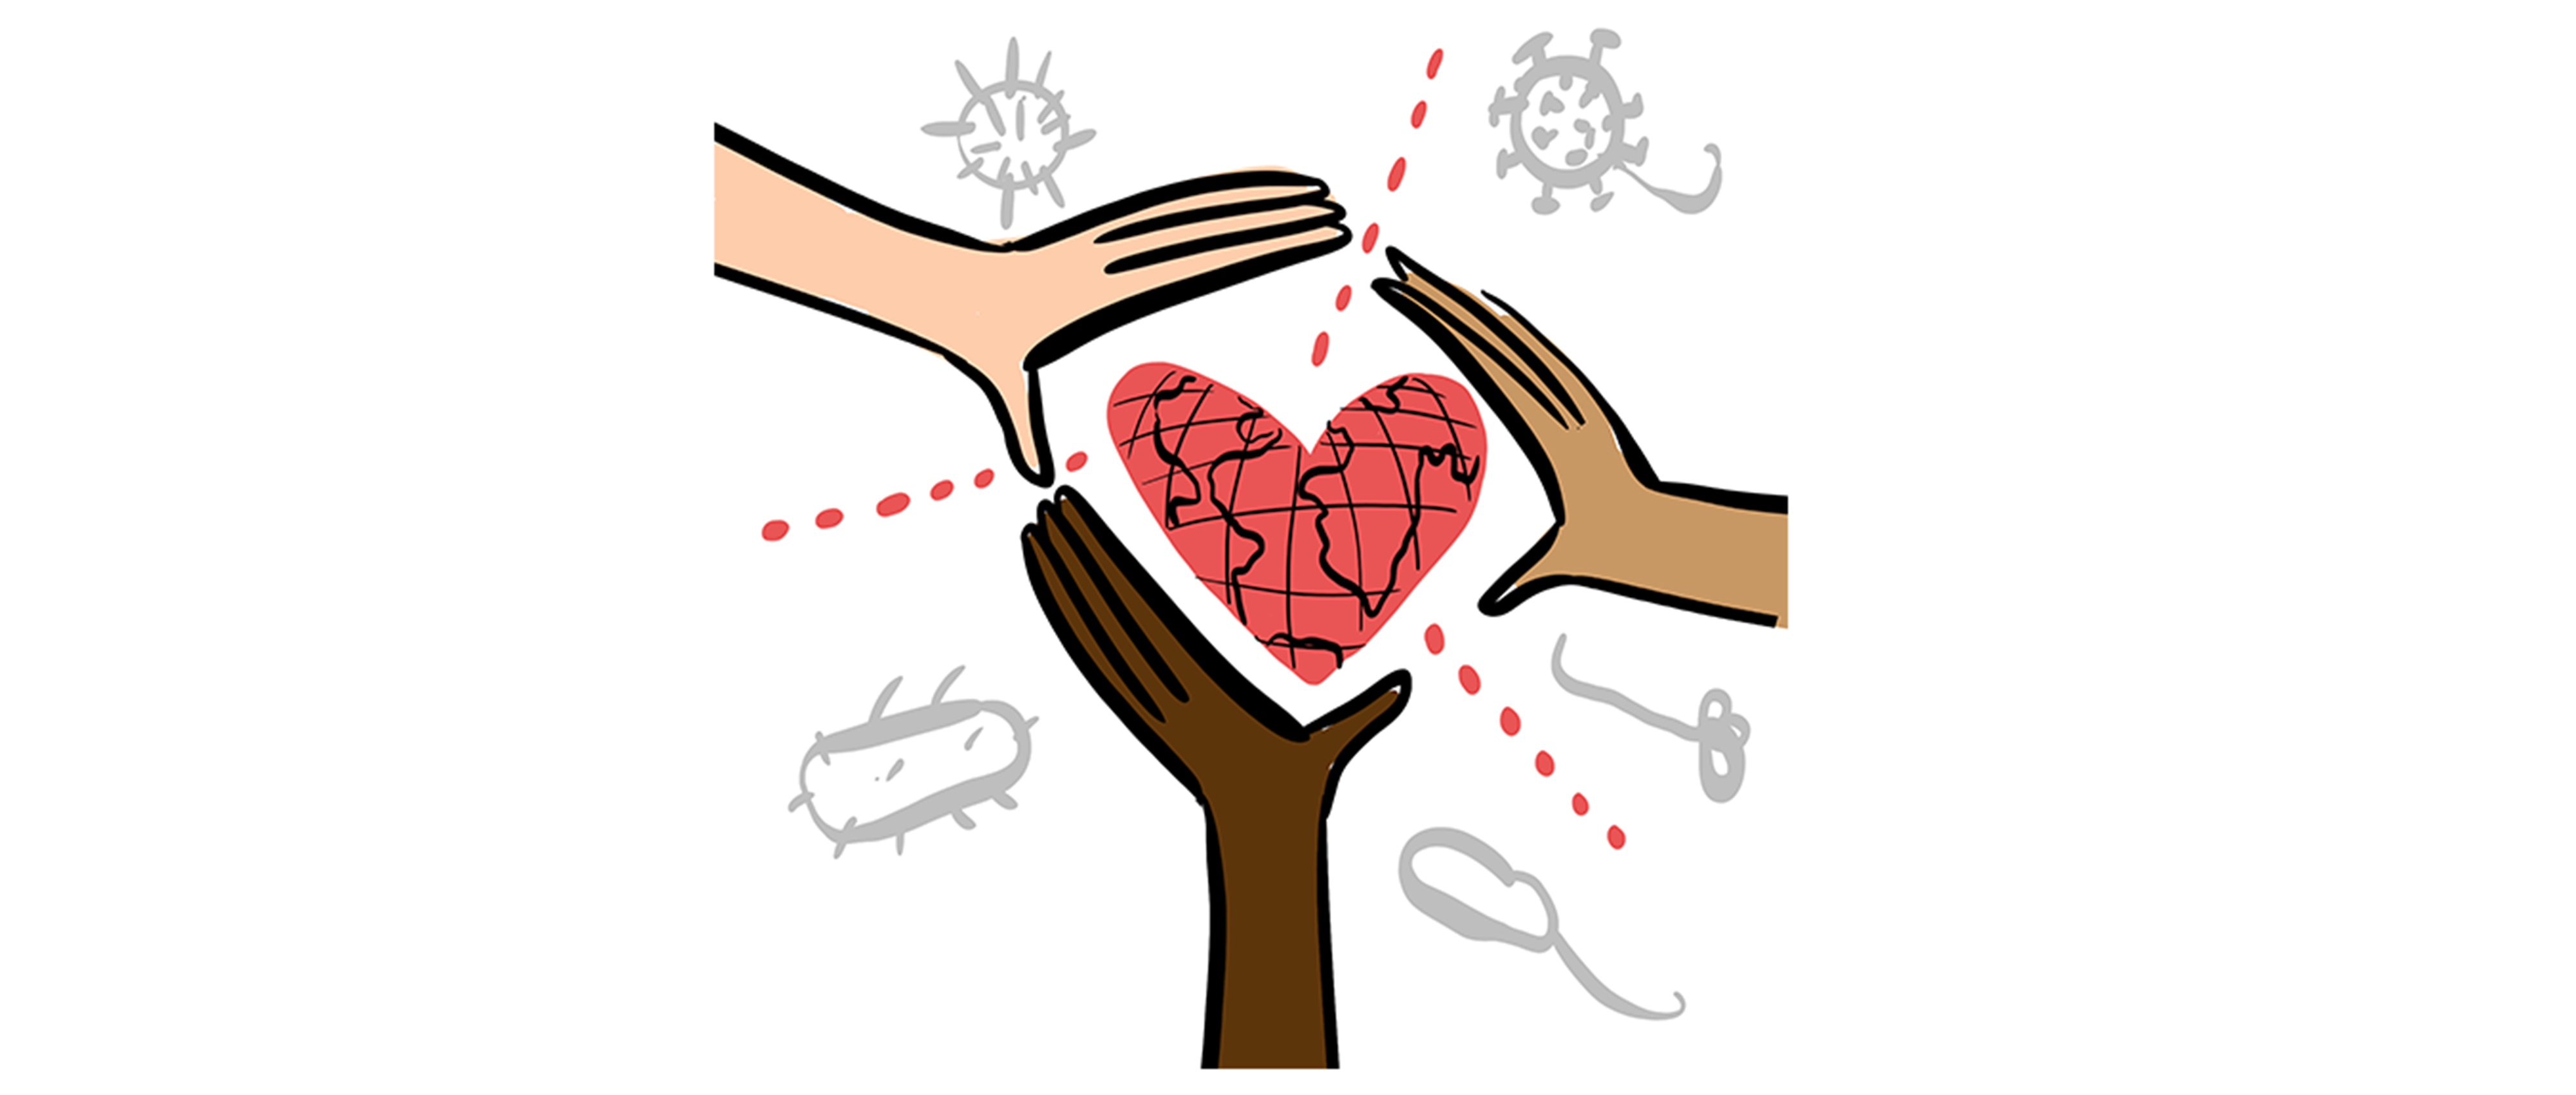 hands around heart - WHO-Seasonal-Influenza